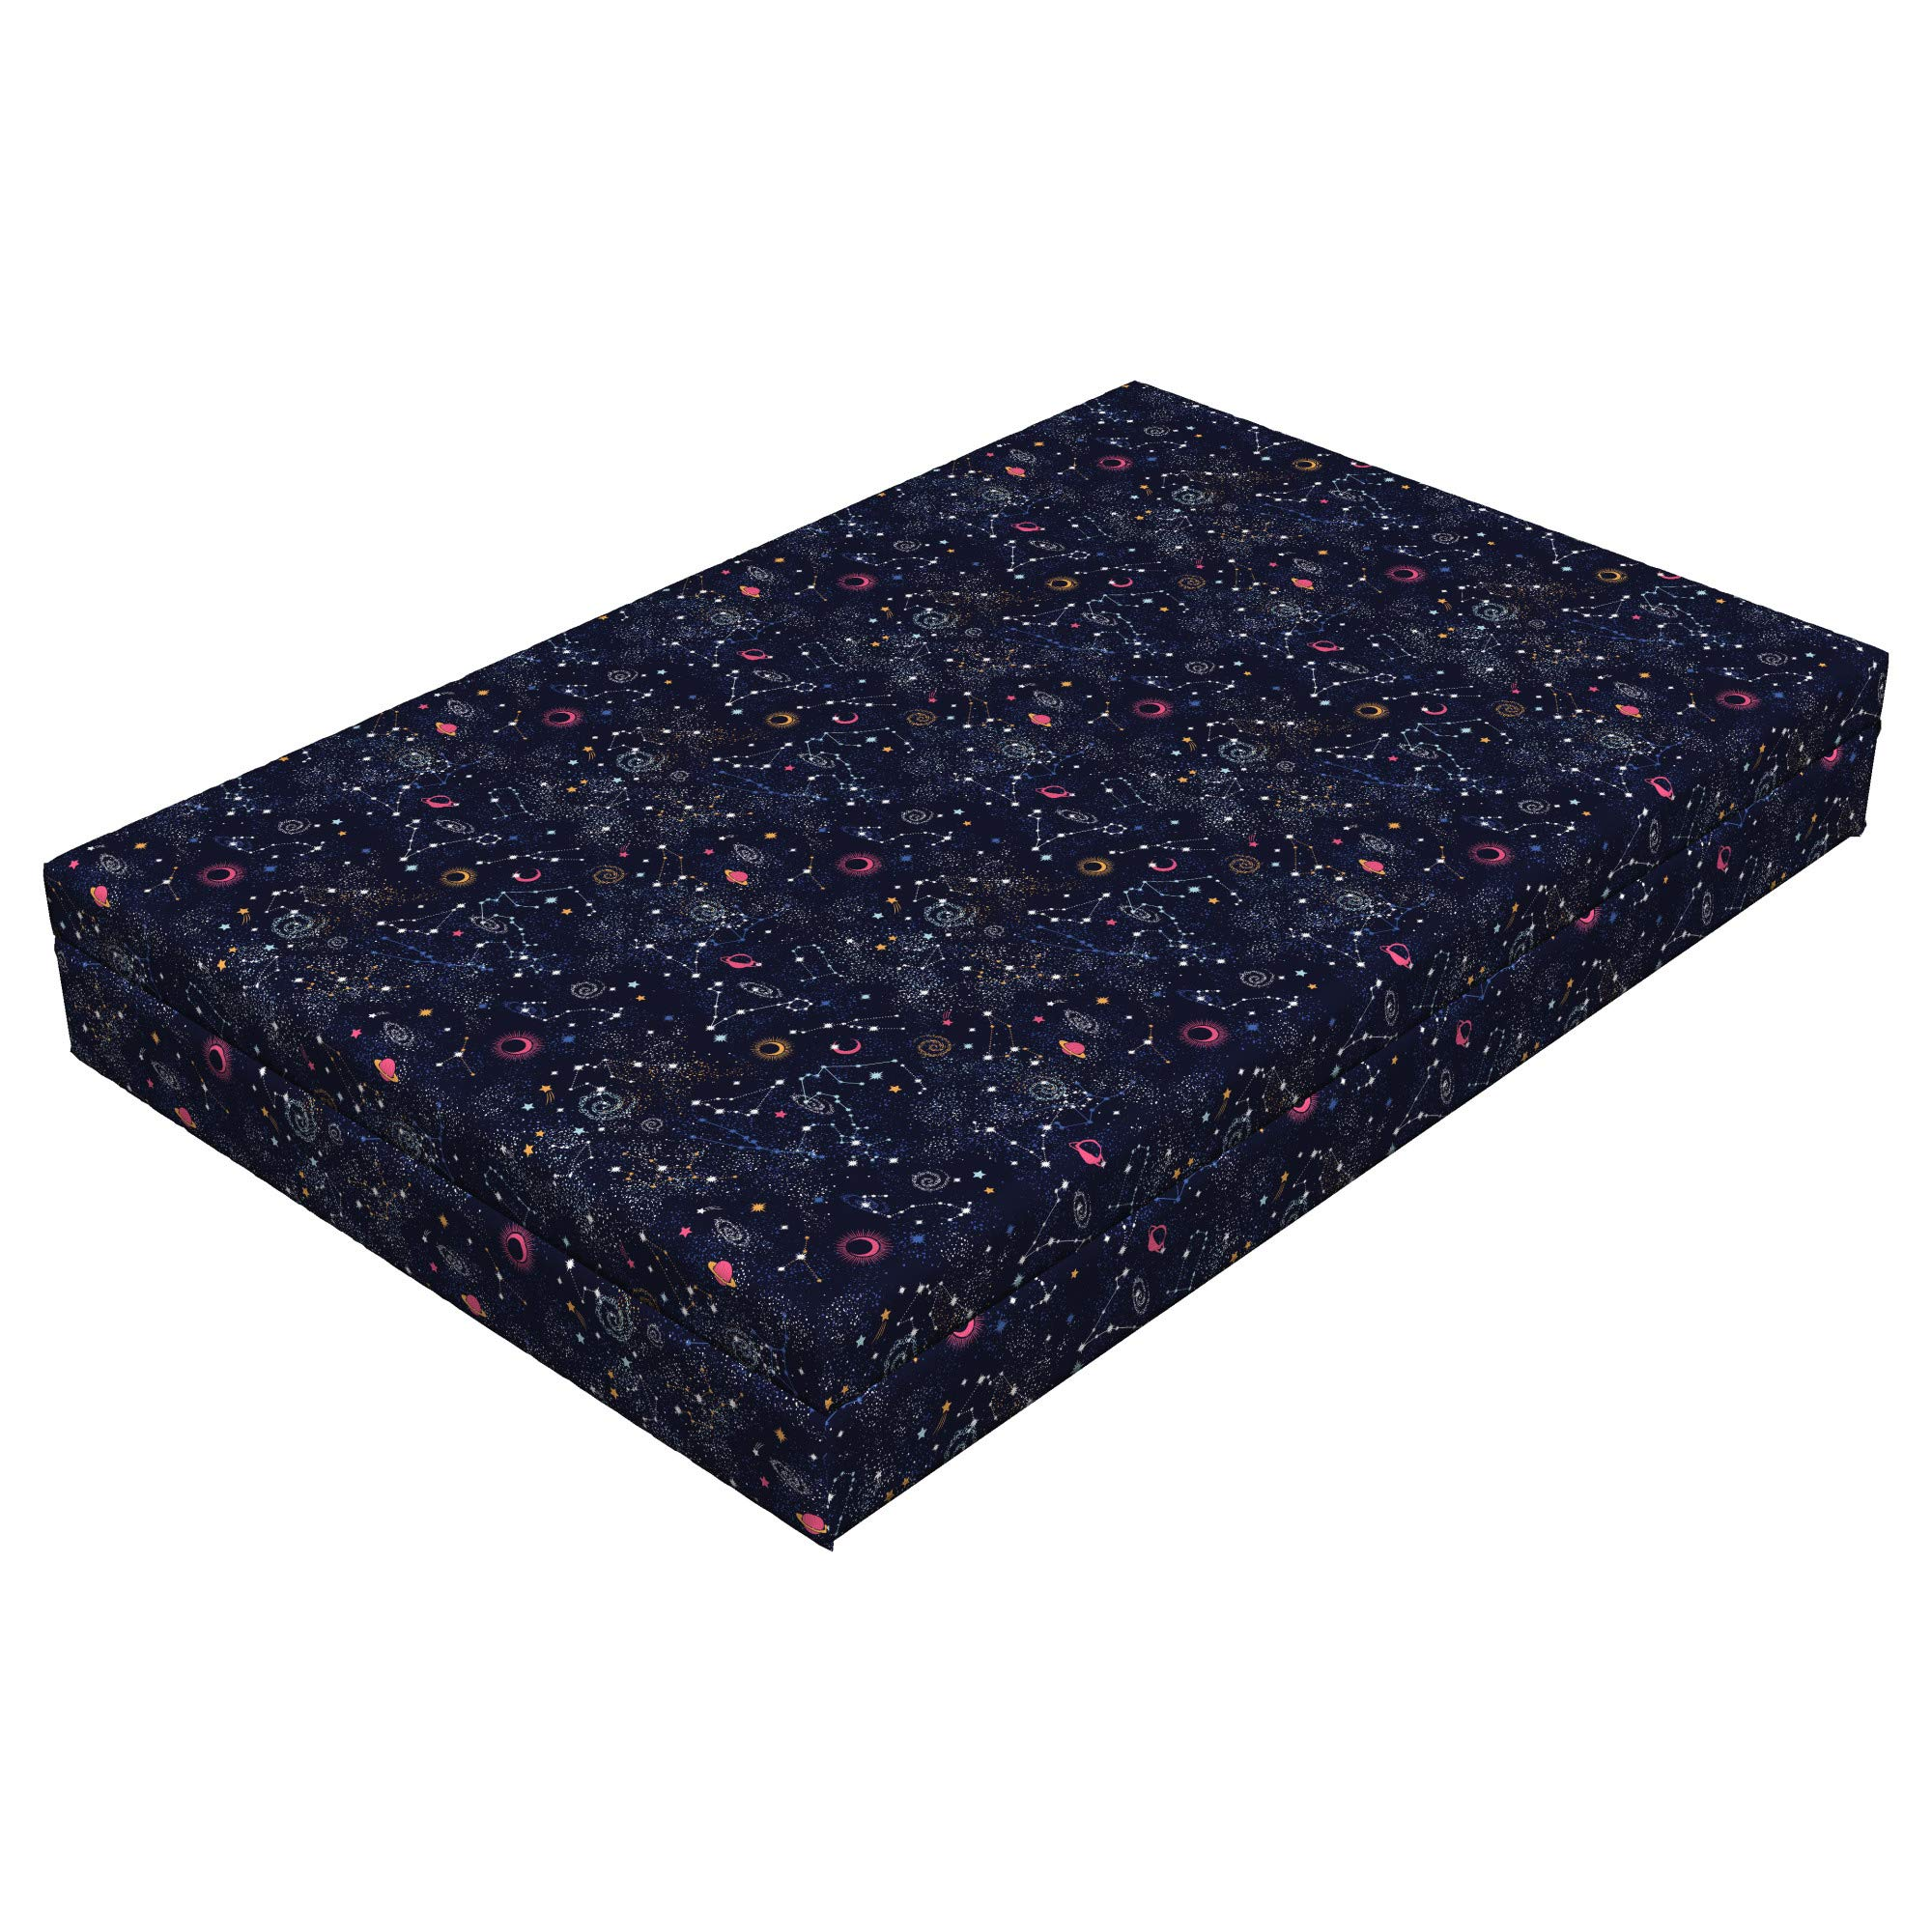 Lunarable Constellation Dog Bed, Star Clusters Galaxies and Planets Astrology Themed Abstract Illustration, Durable Washable Mat with Decorative Fabric Cover, 48'' x 32'' x 6'', Multicolor by Lunarable (Image #1)